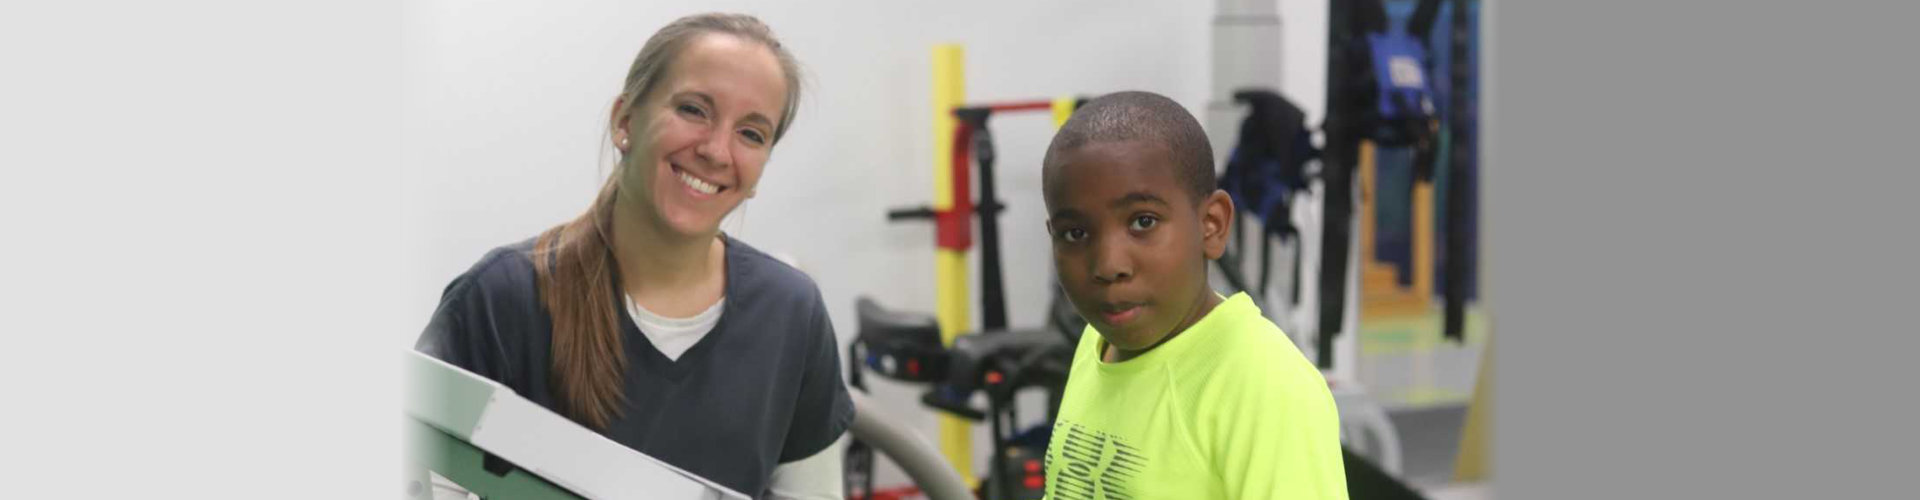 African-American boy wearing yellow shirt and a woman